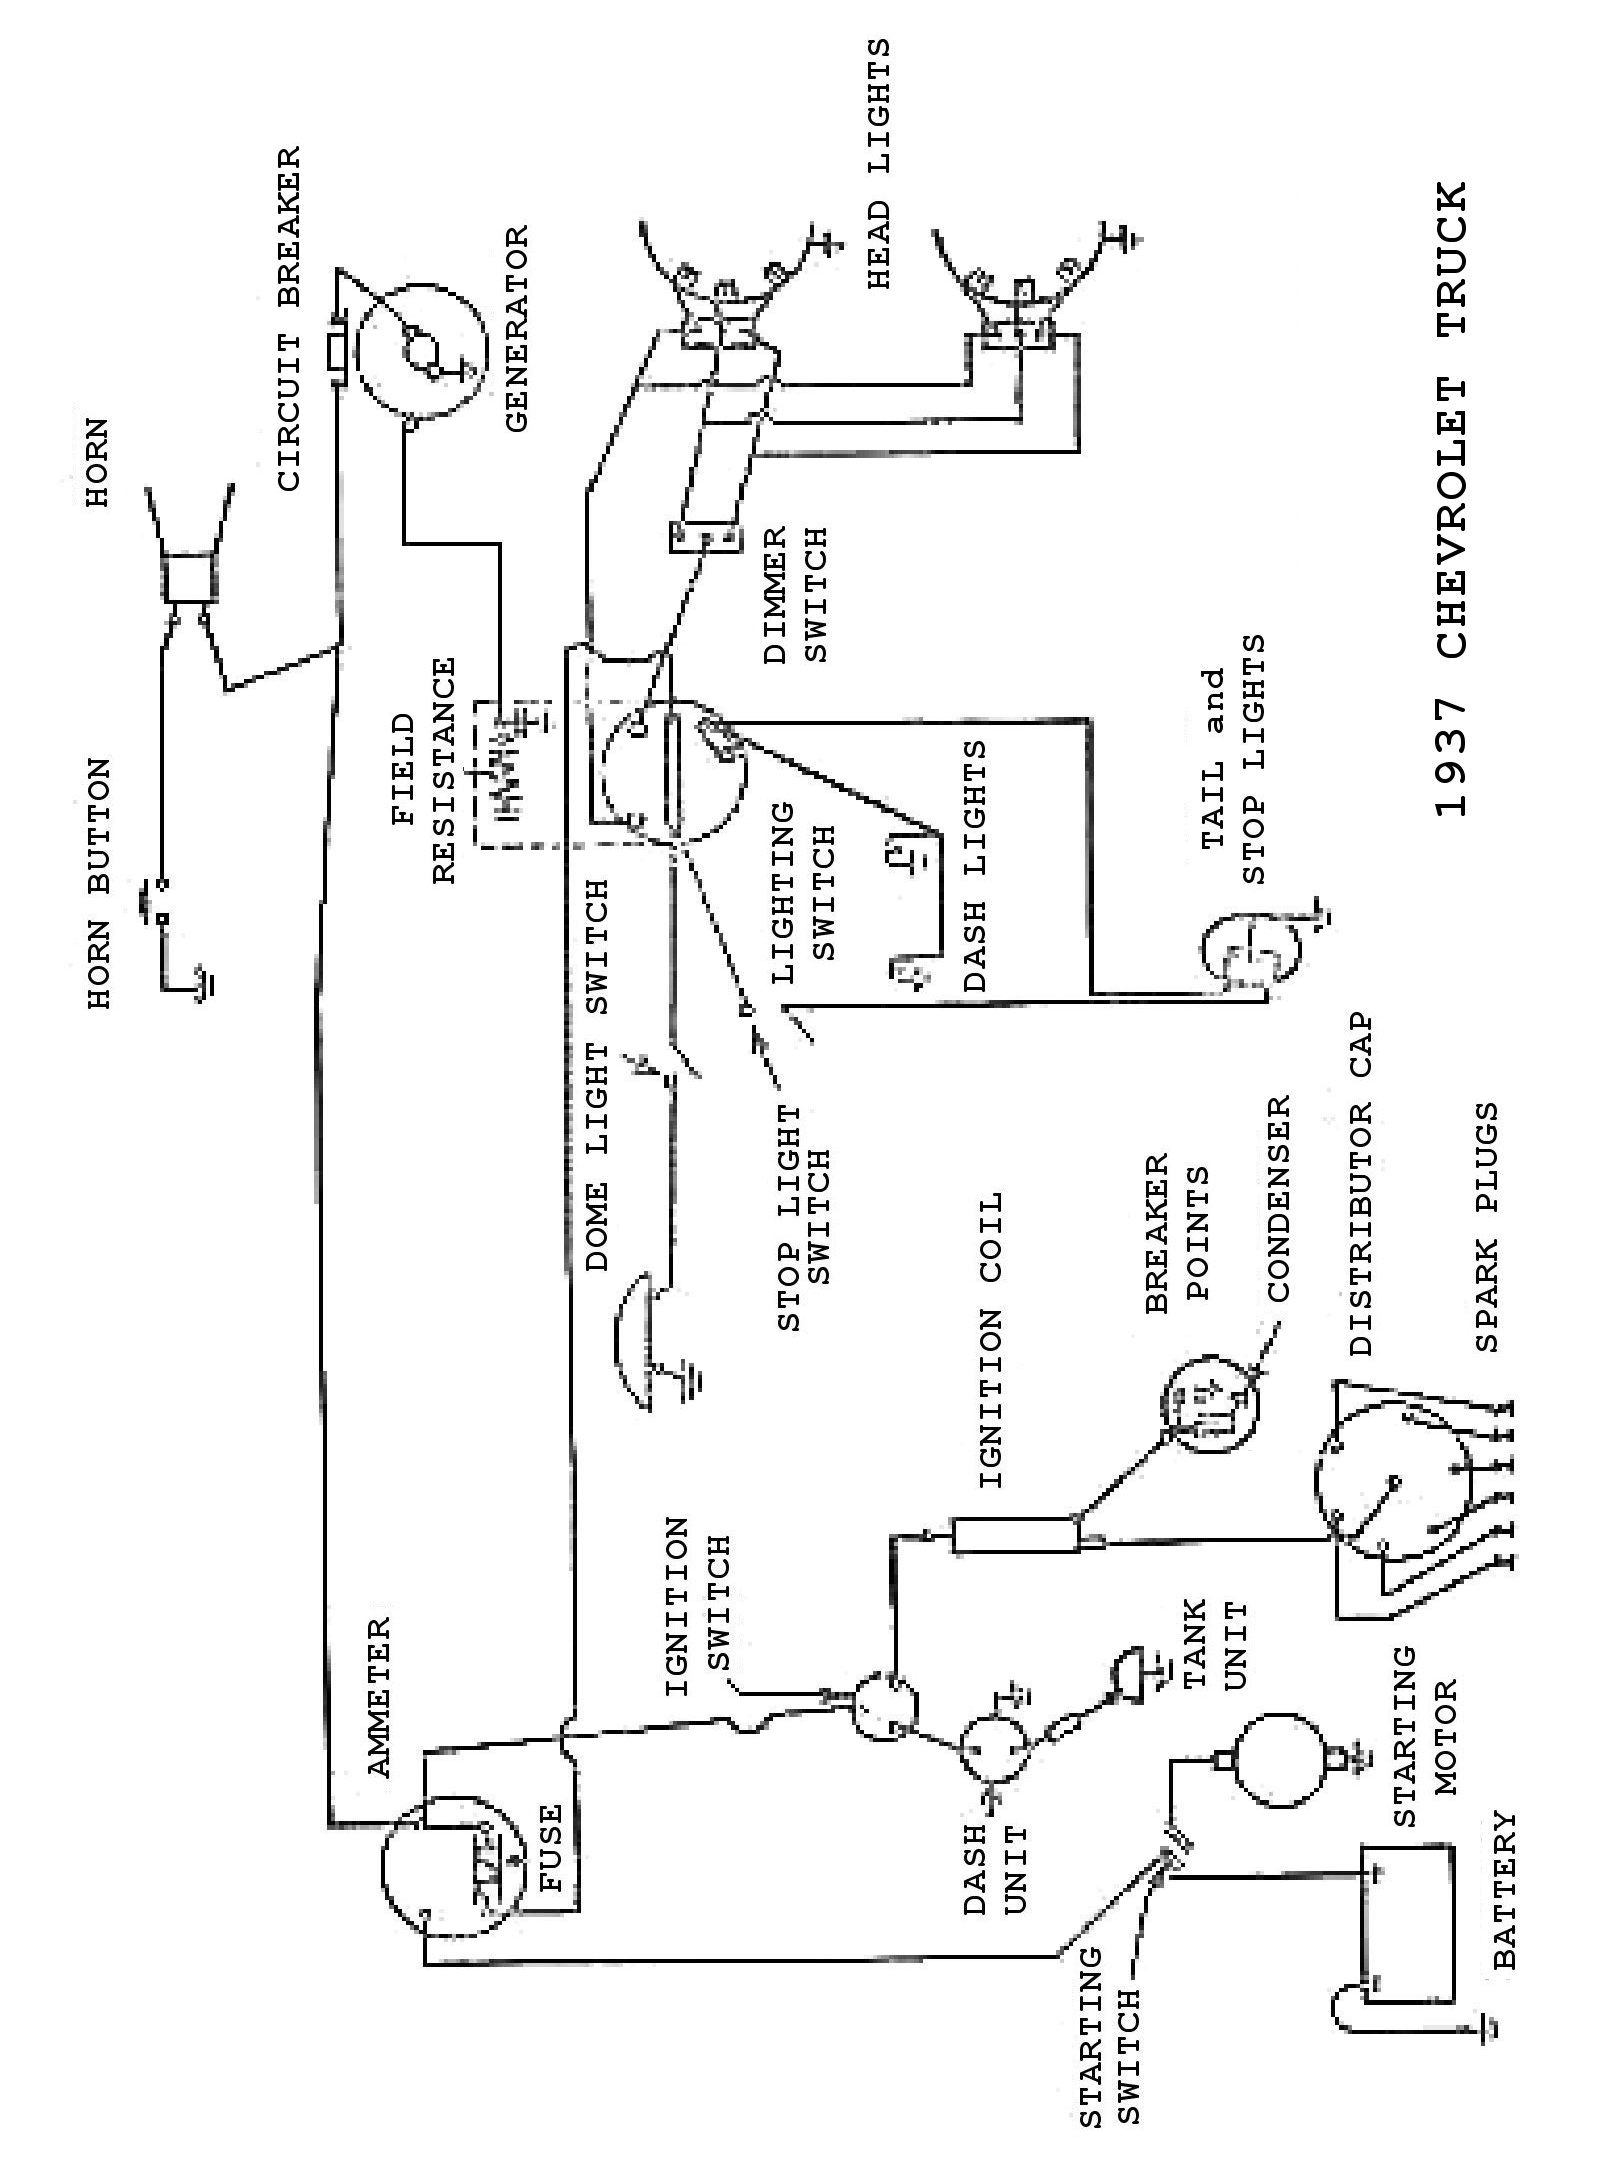 1936 chevy truck wiring diagram 220 dryer outlet diagrams